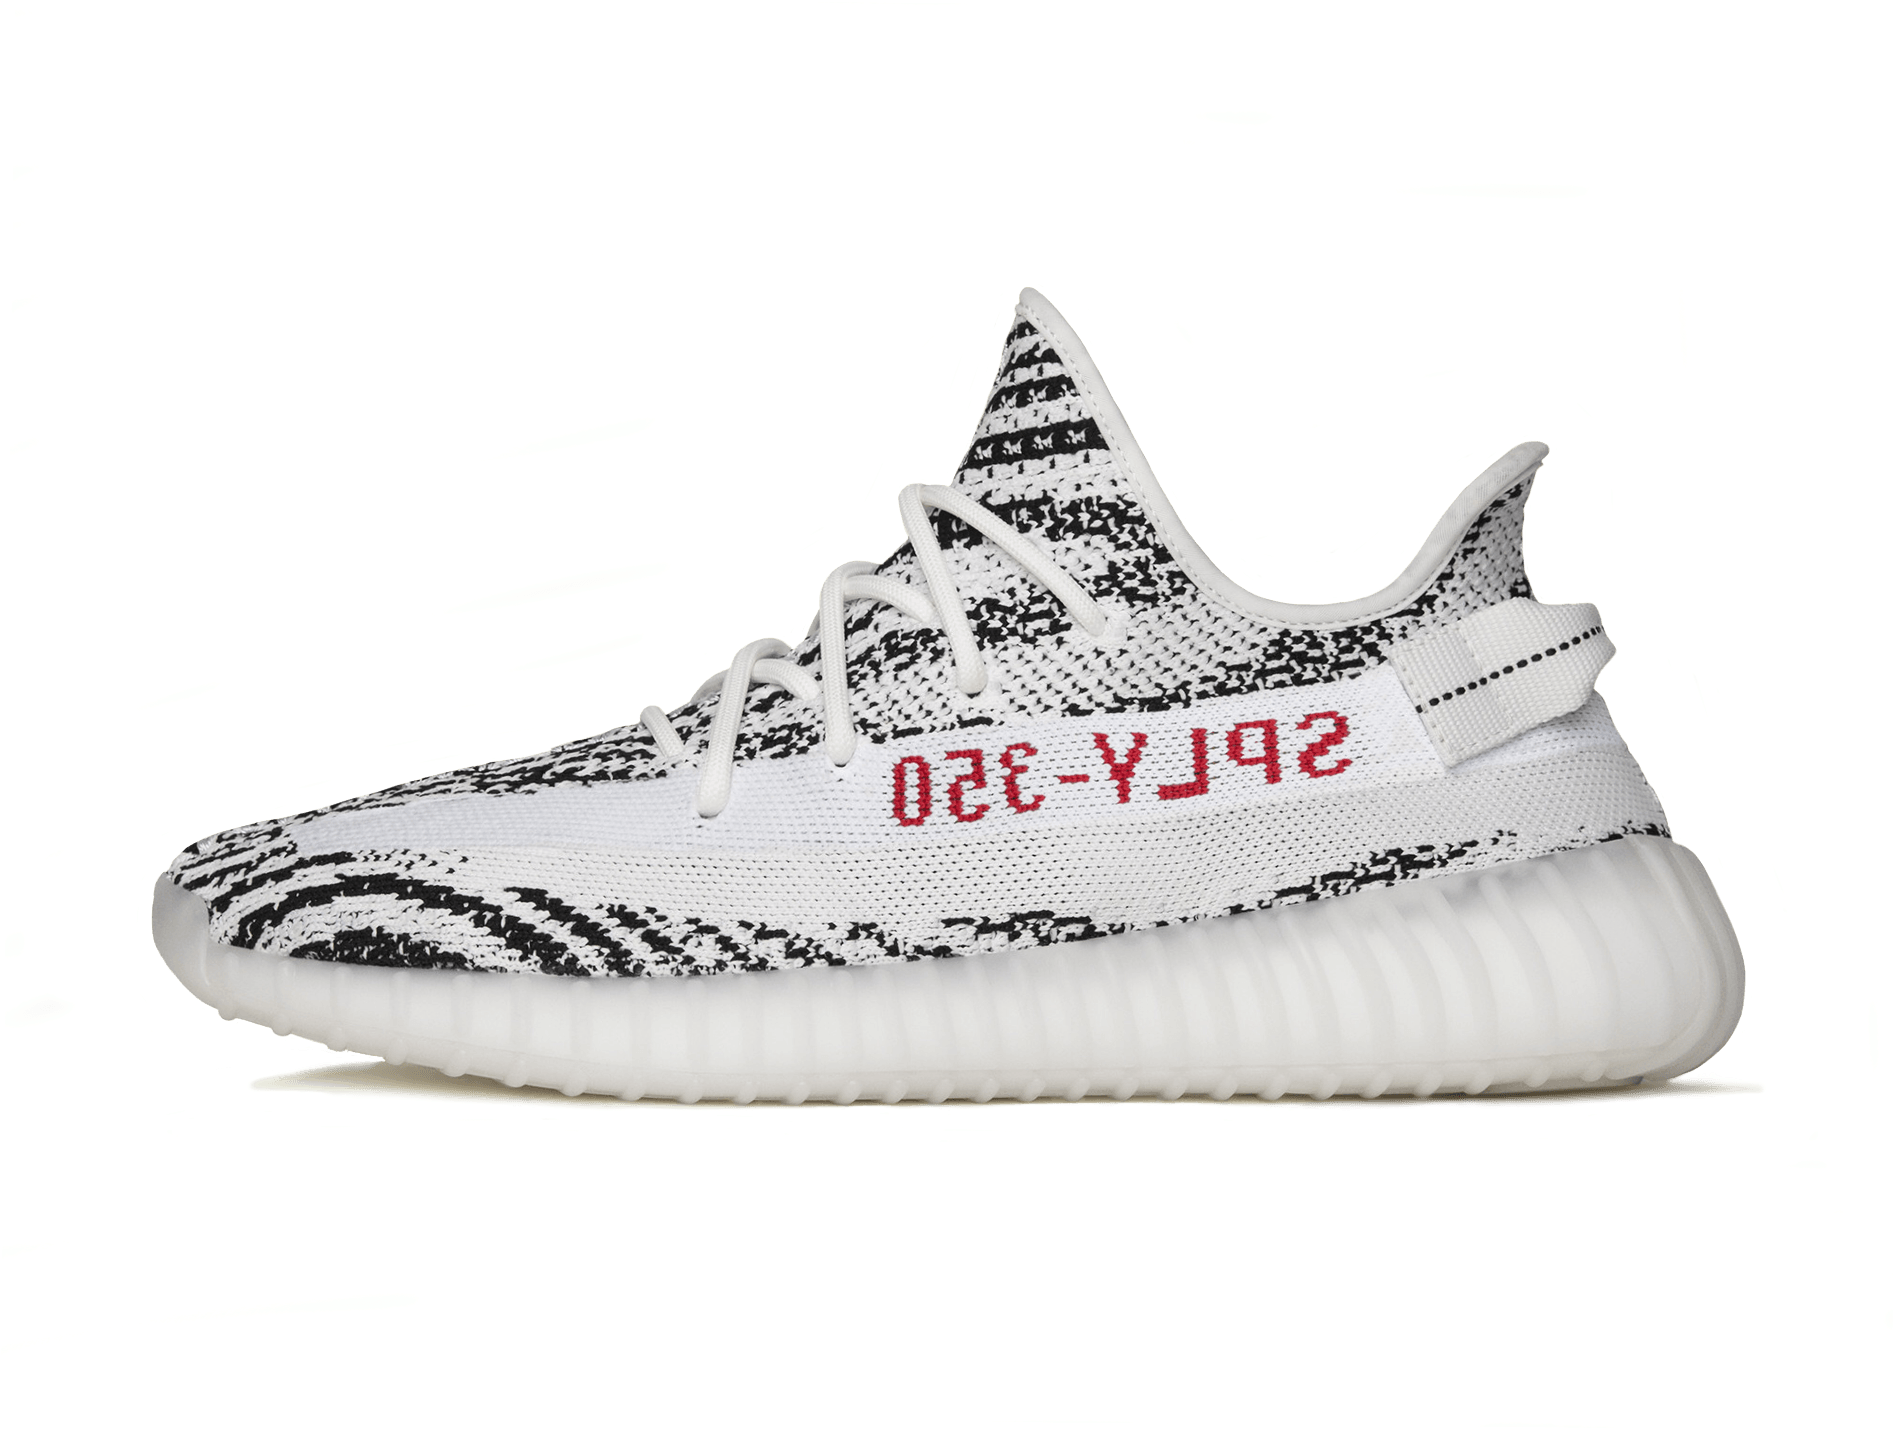 4eb7f116ad2ce Yeezy Boost 350 Transparent   PNG Clipart Free Download - YA-webdesign